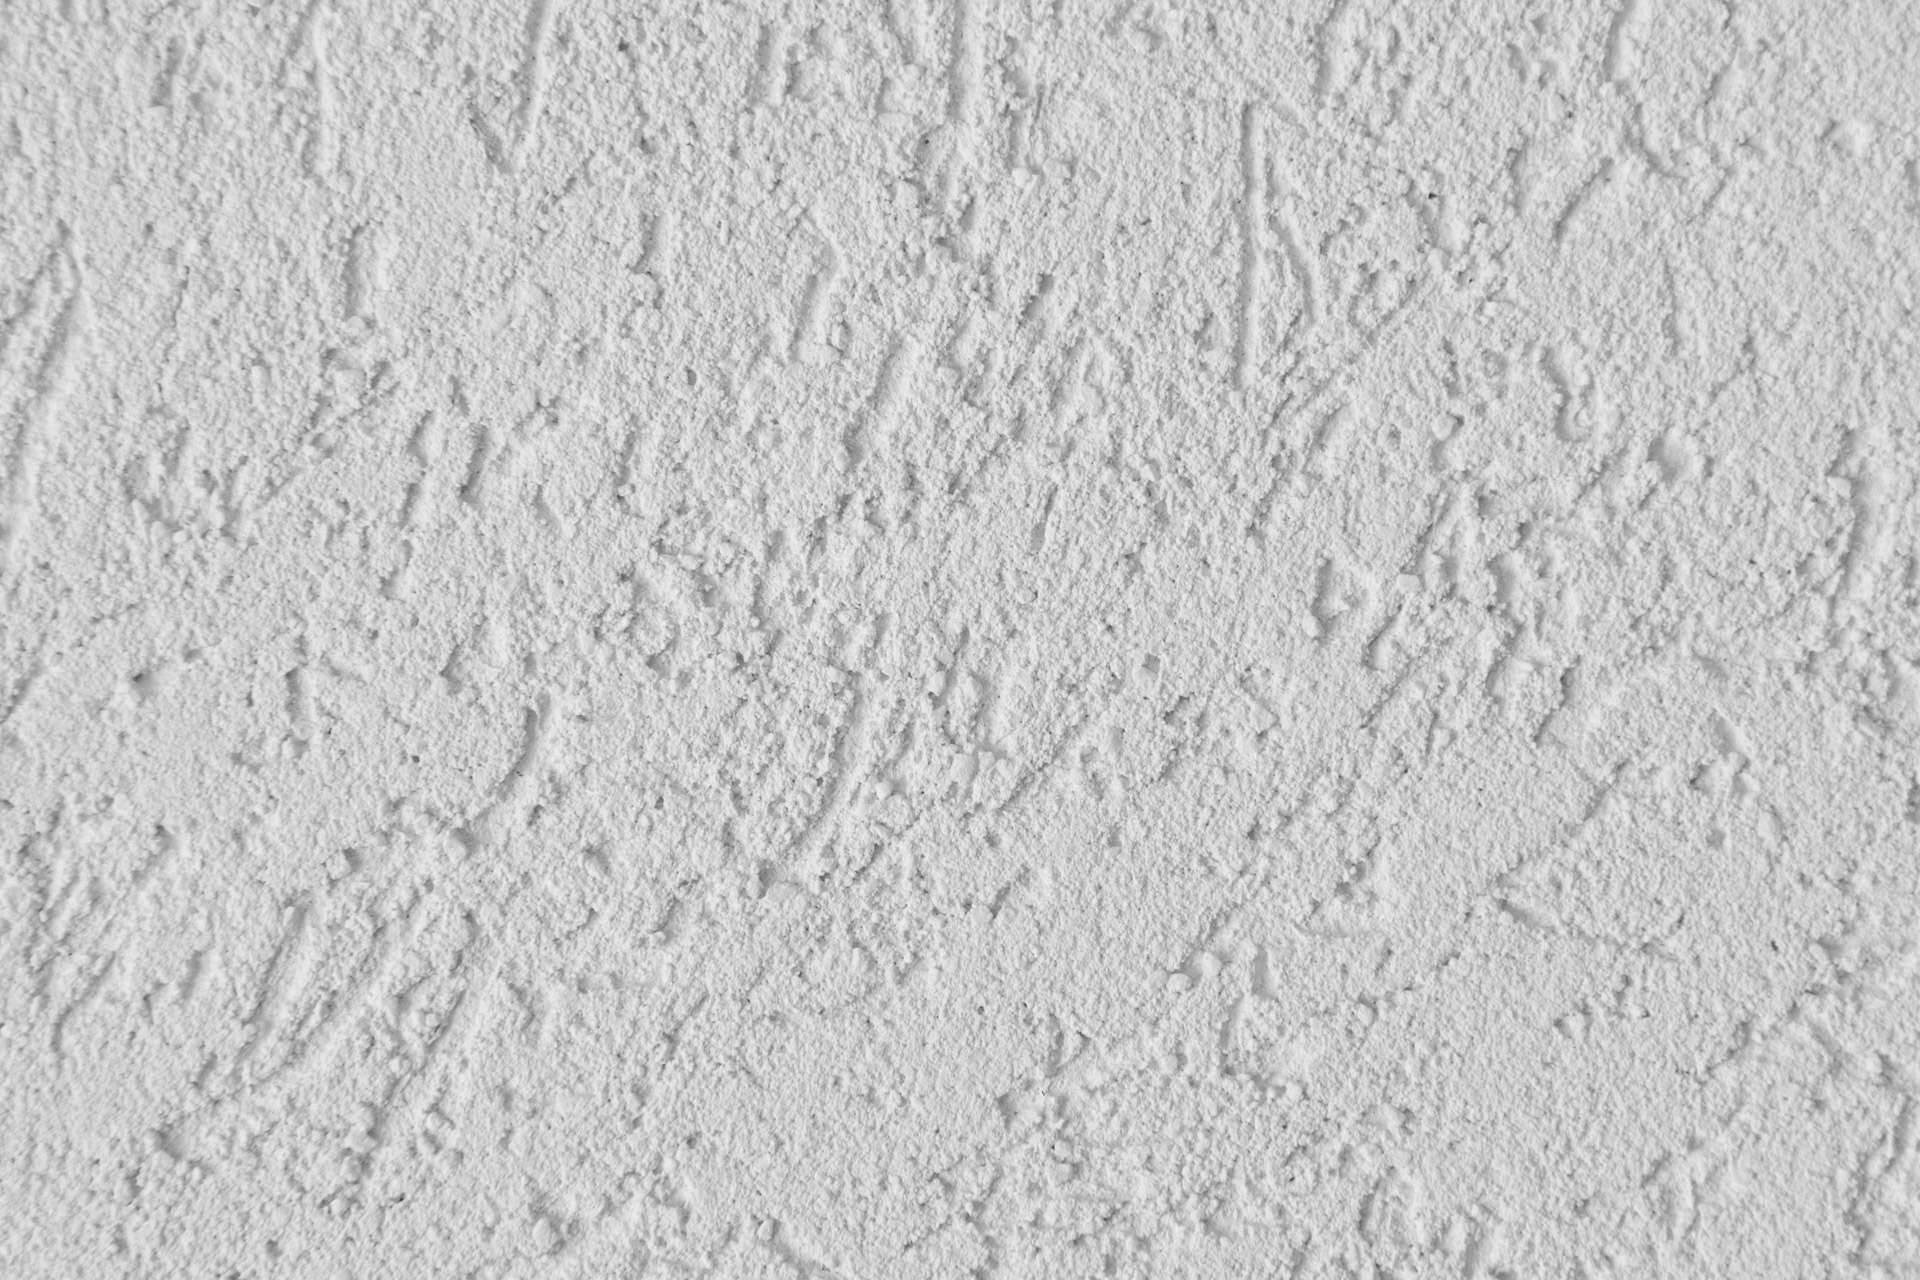 29 White Hd Grunge Backgrounds Wallpapers Images